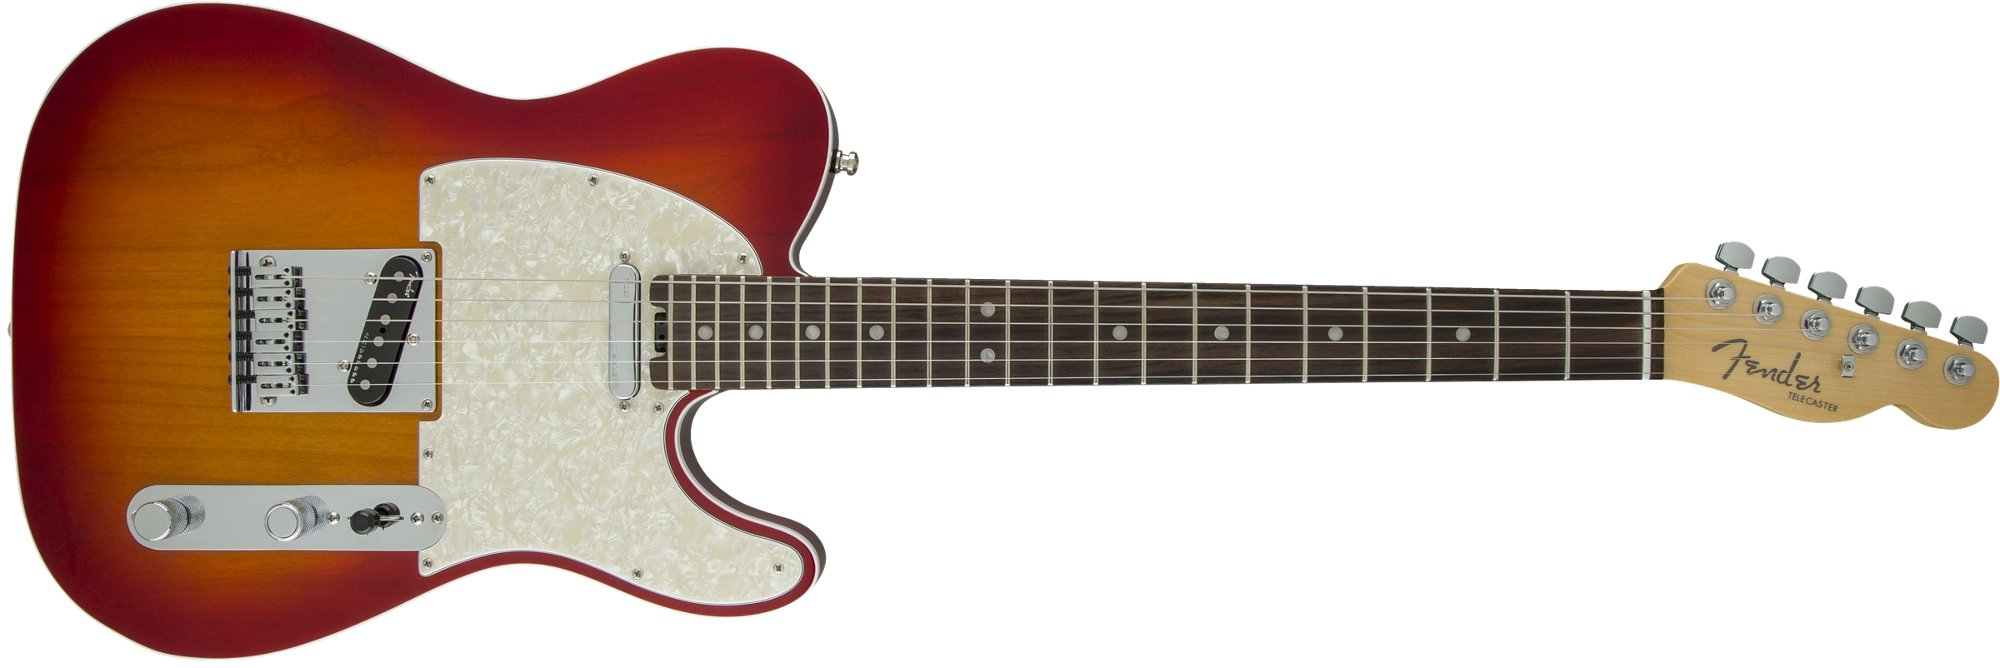 Single Cutaway SS Electric Guitar with Alder Body and Rosewood Fingerboard